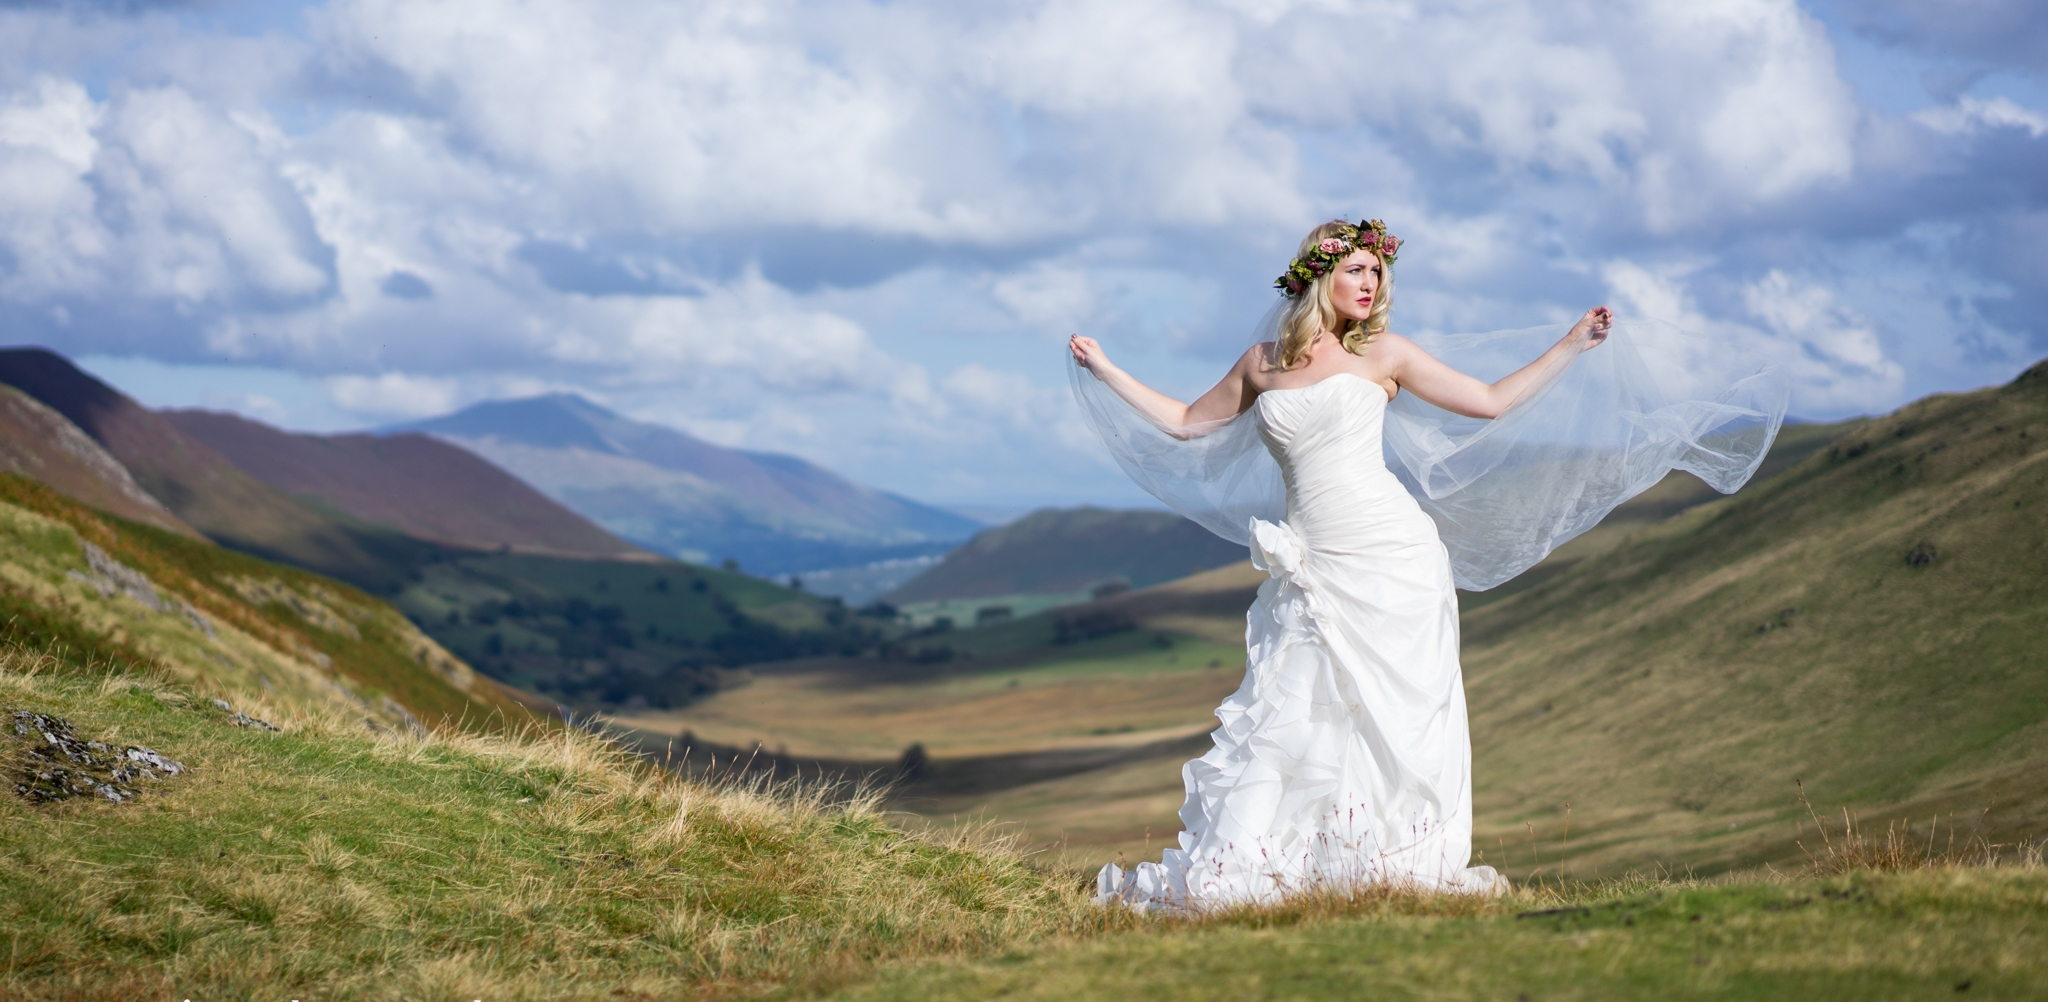 Professional Wedding Photographer in Edinburgh